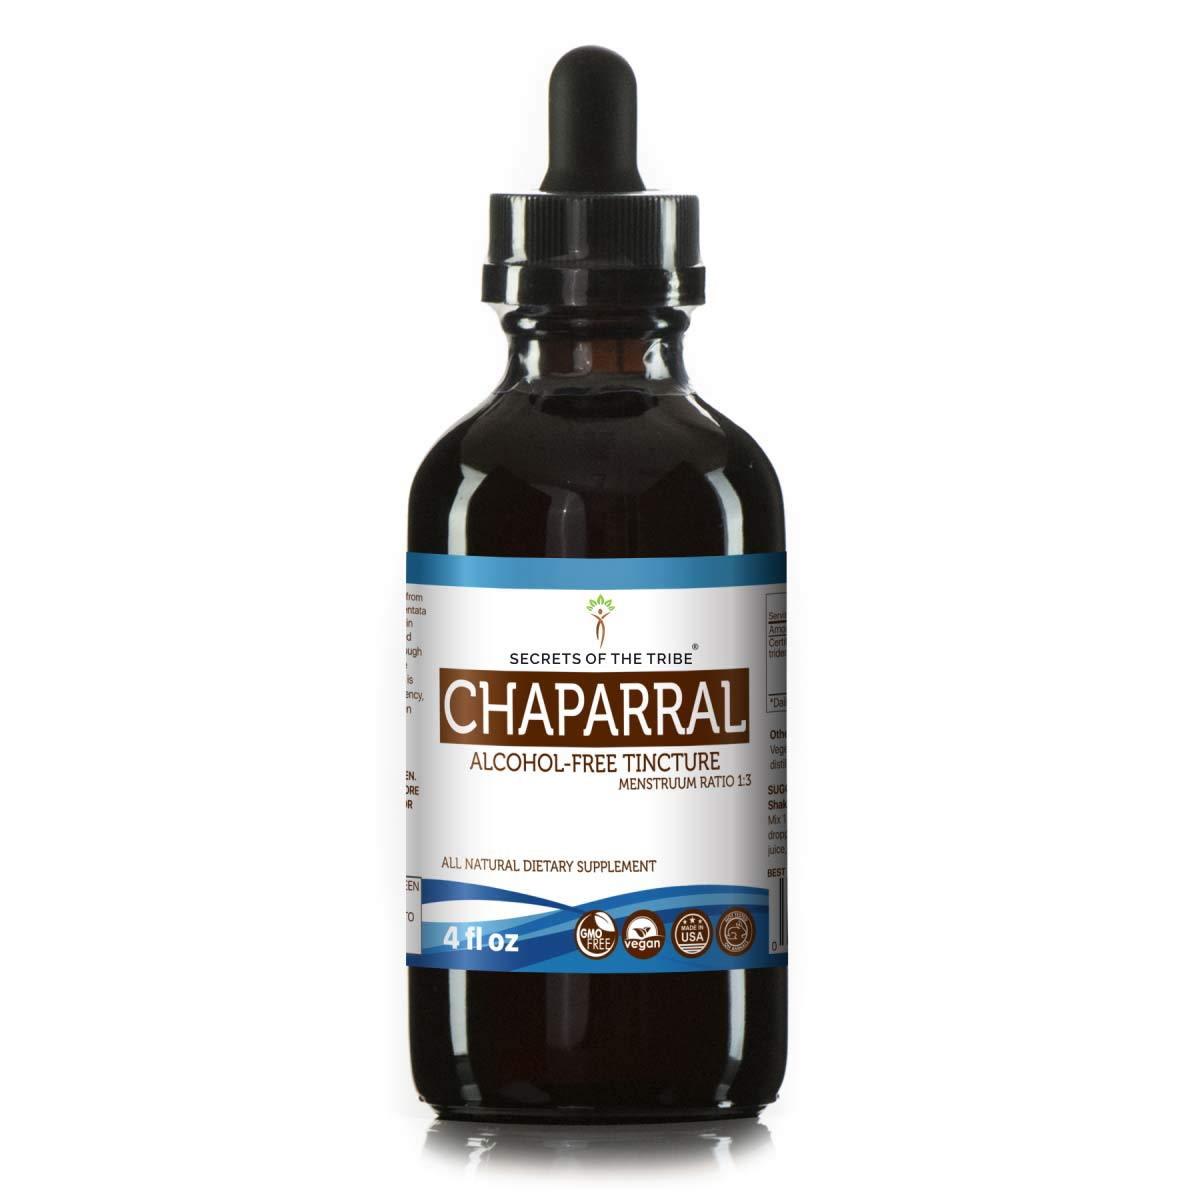 Chaparral Alcohol-Free Liquid Extract, Organic Chaparral Larrea tridentata Dried Leaf and Flower Tincture Supplement 4 FL OZ